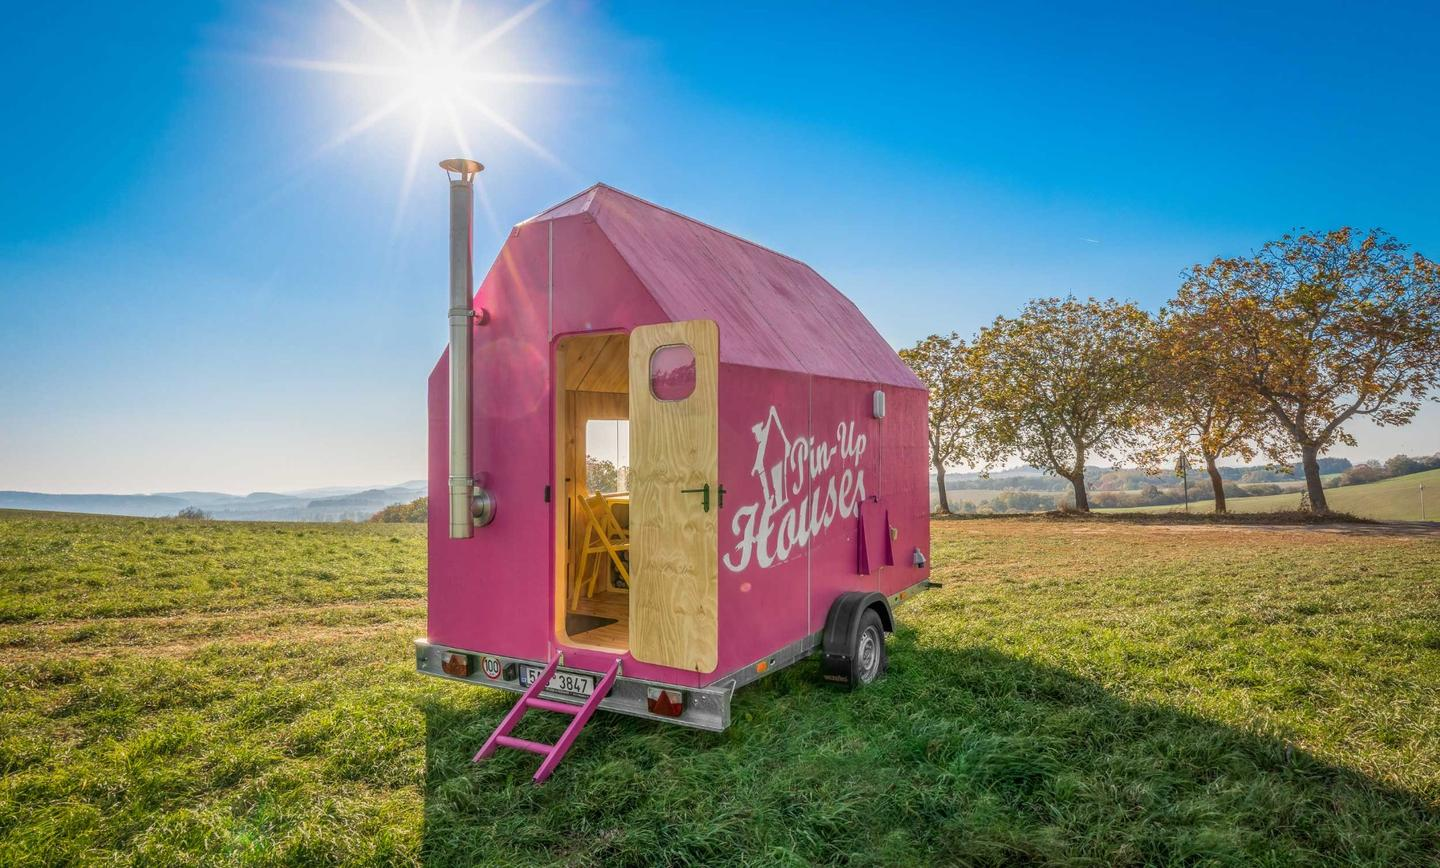 The Magenta offers ano-frills tiny house